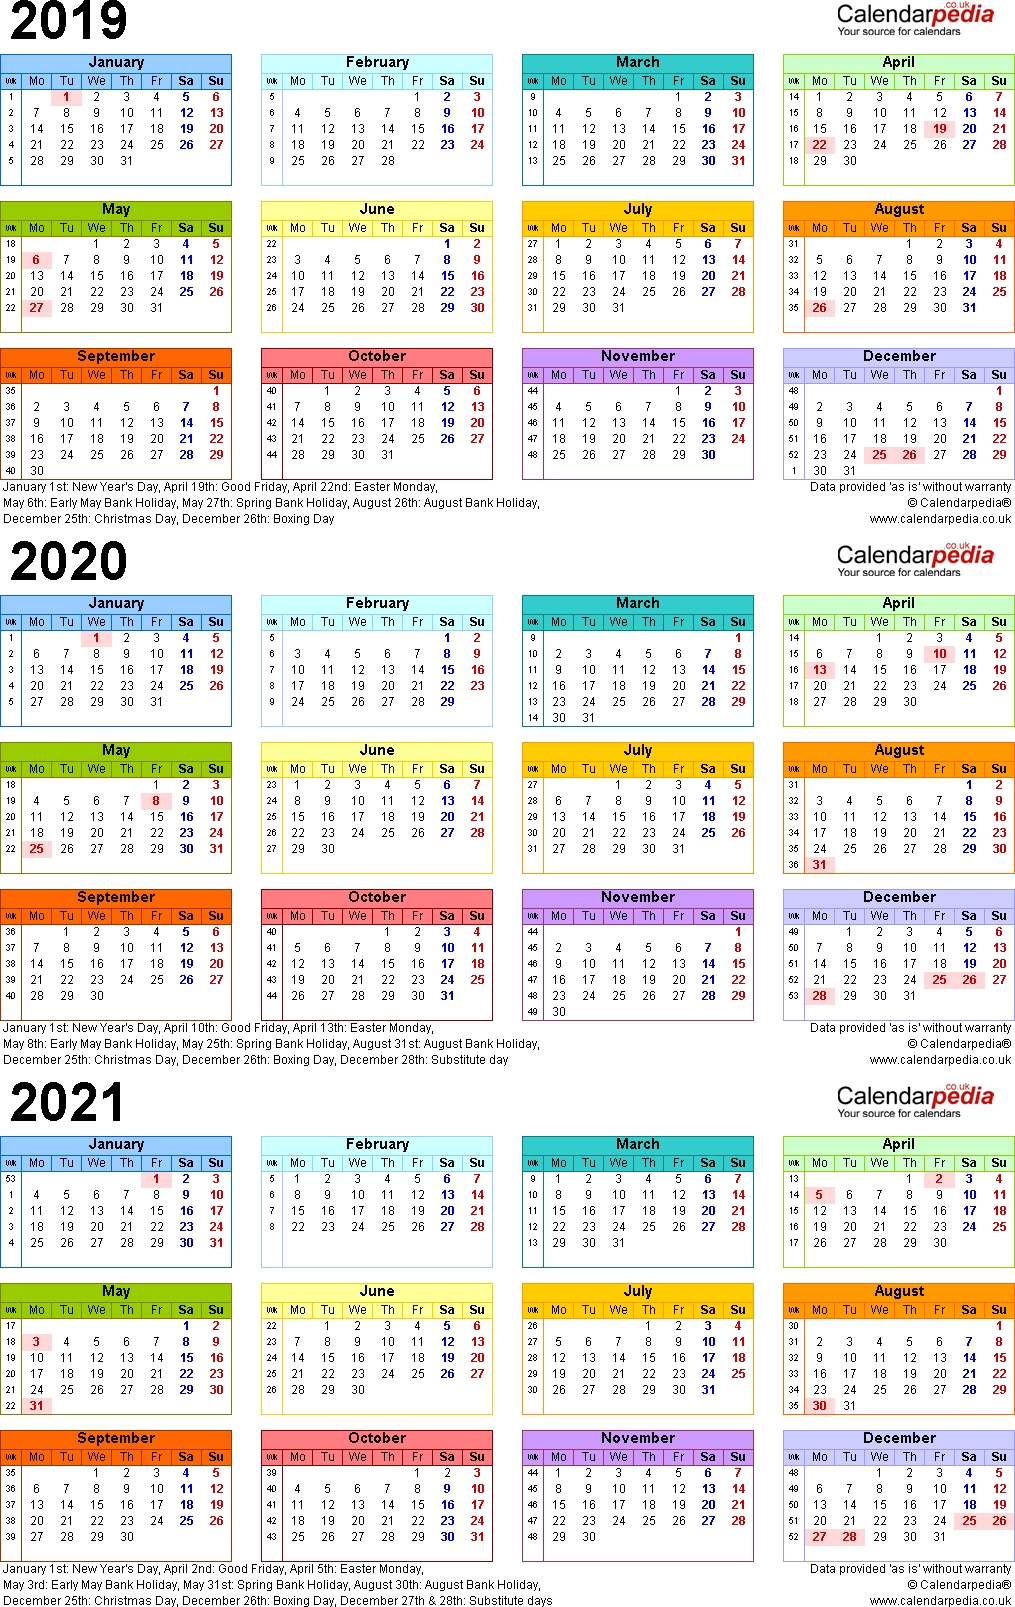 Three Year Calendars For 2019, 2020 & 2021 (Uk) For Word throughout Three Year Calendar 2019 2020 2021